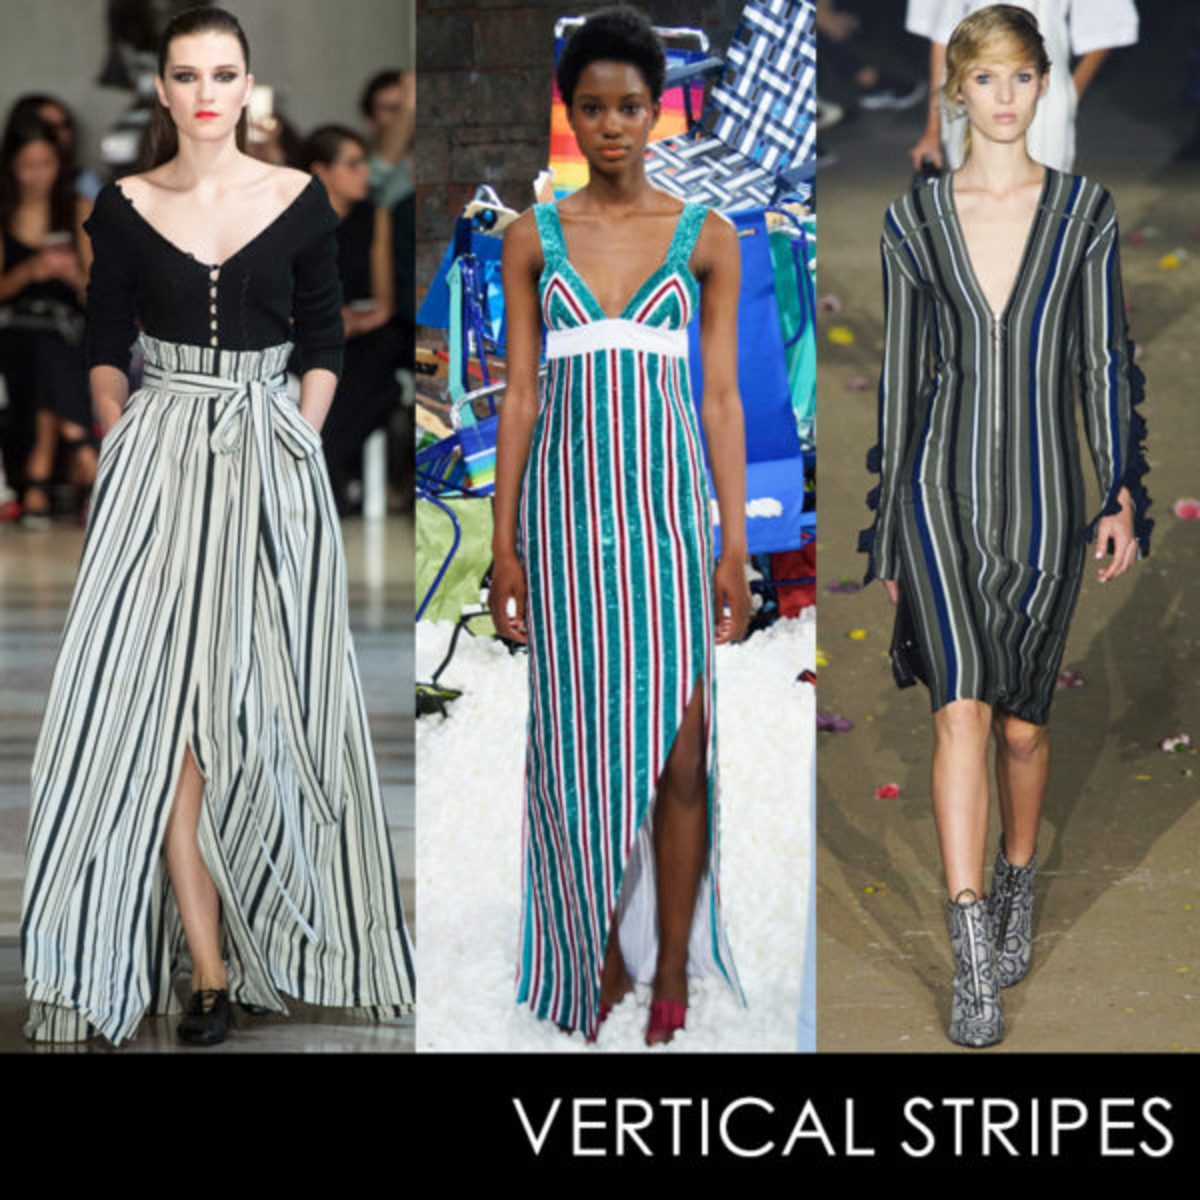 nyfw-trends-vertical-stripes-600x600